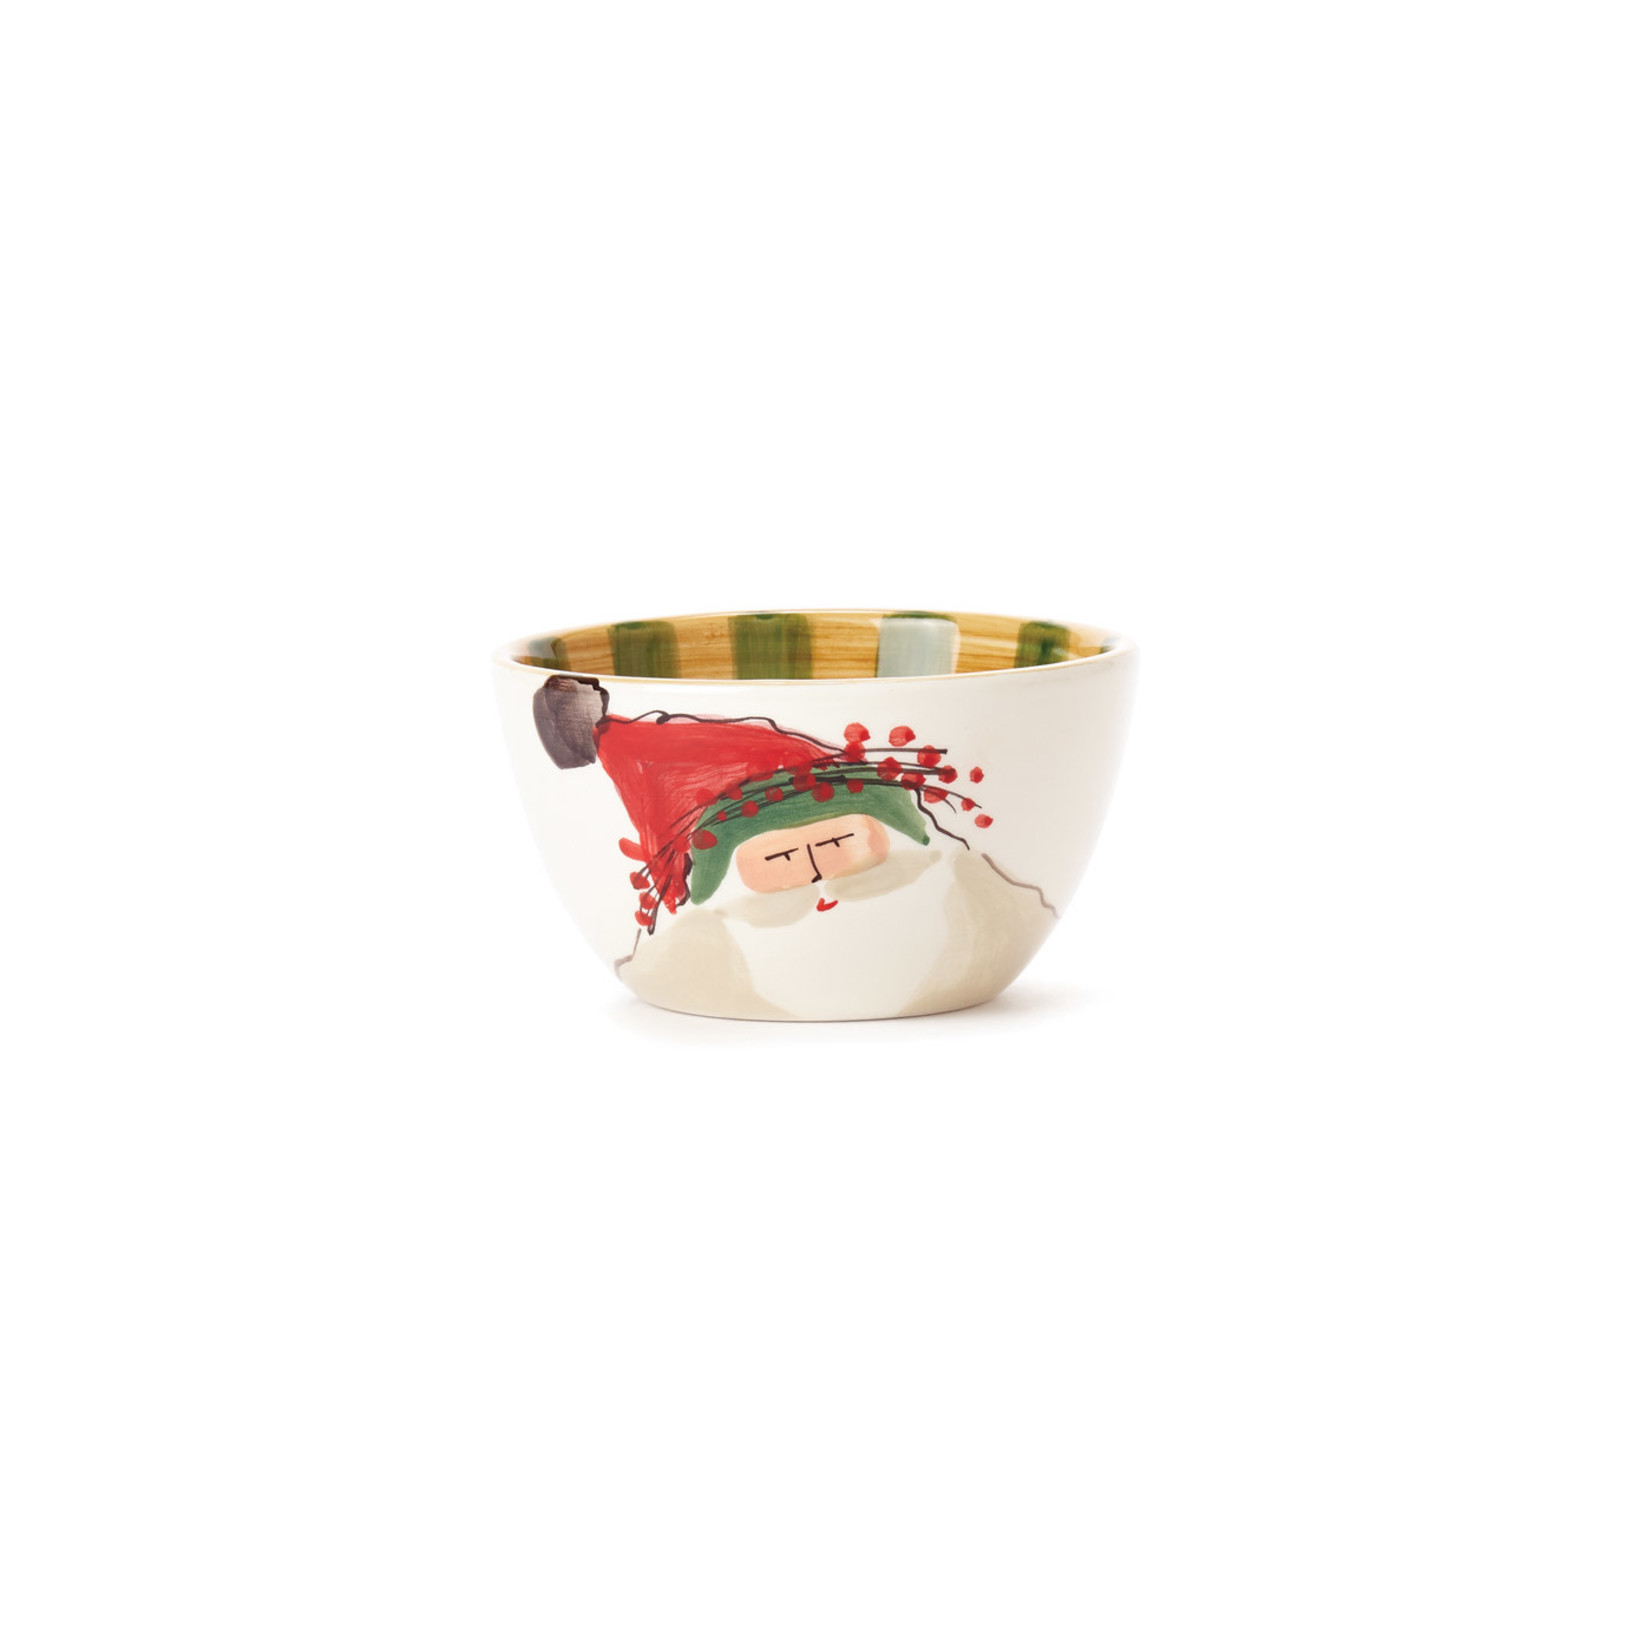 OSN Cereal Bowl Green